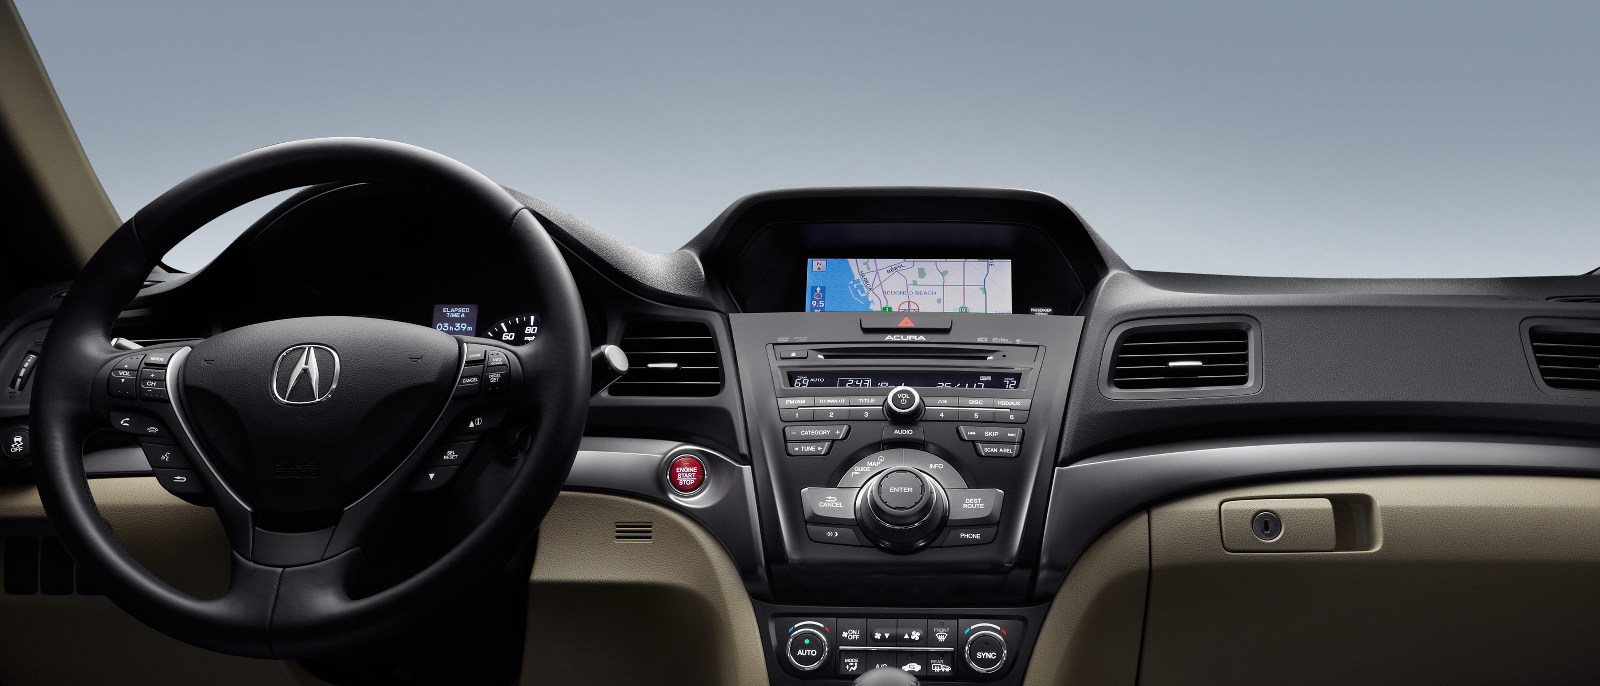 Exceptional ... 2015 Acura ILX Interior ... Photo